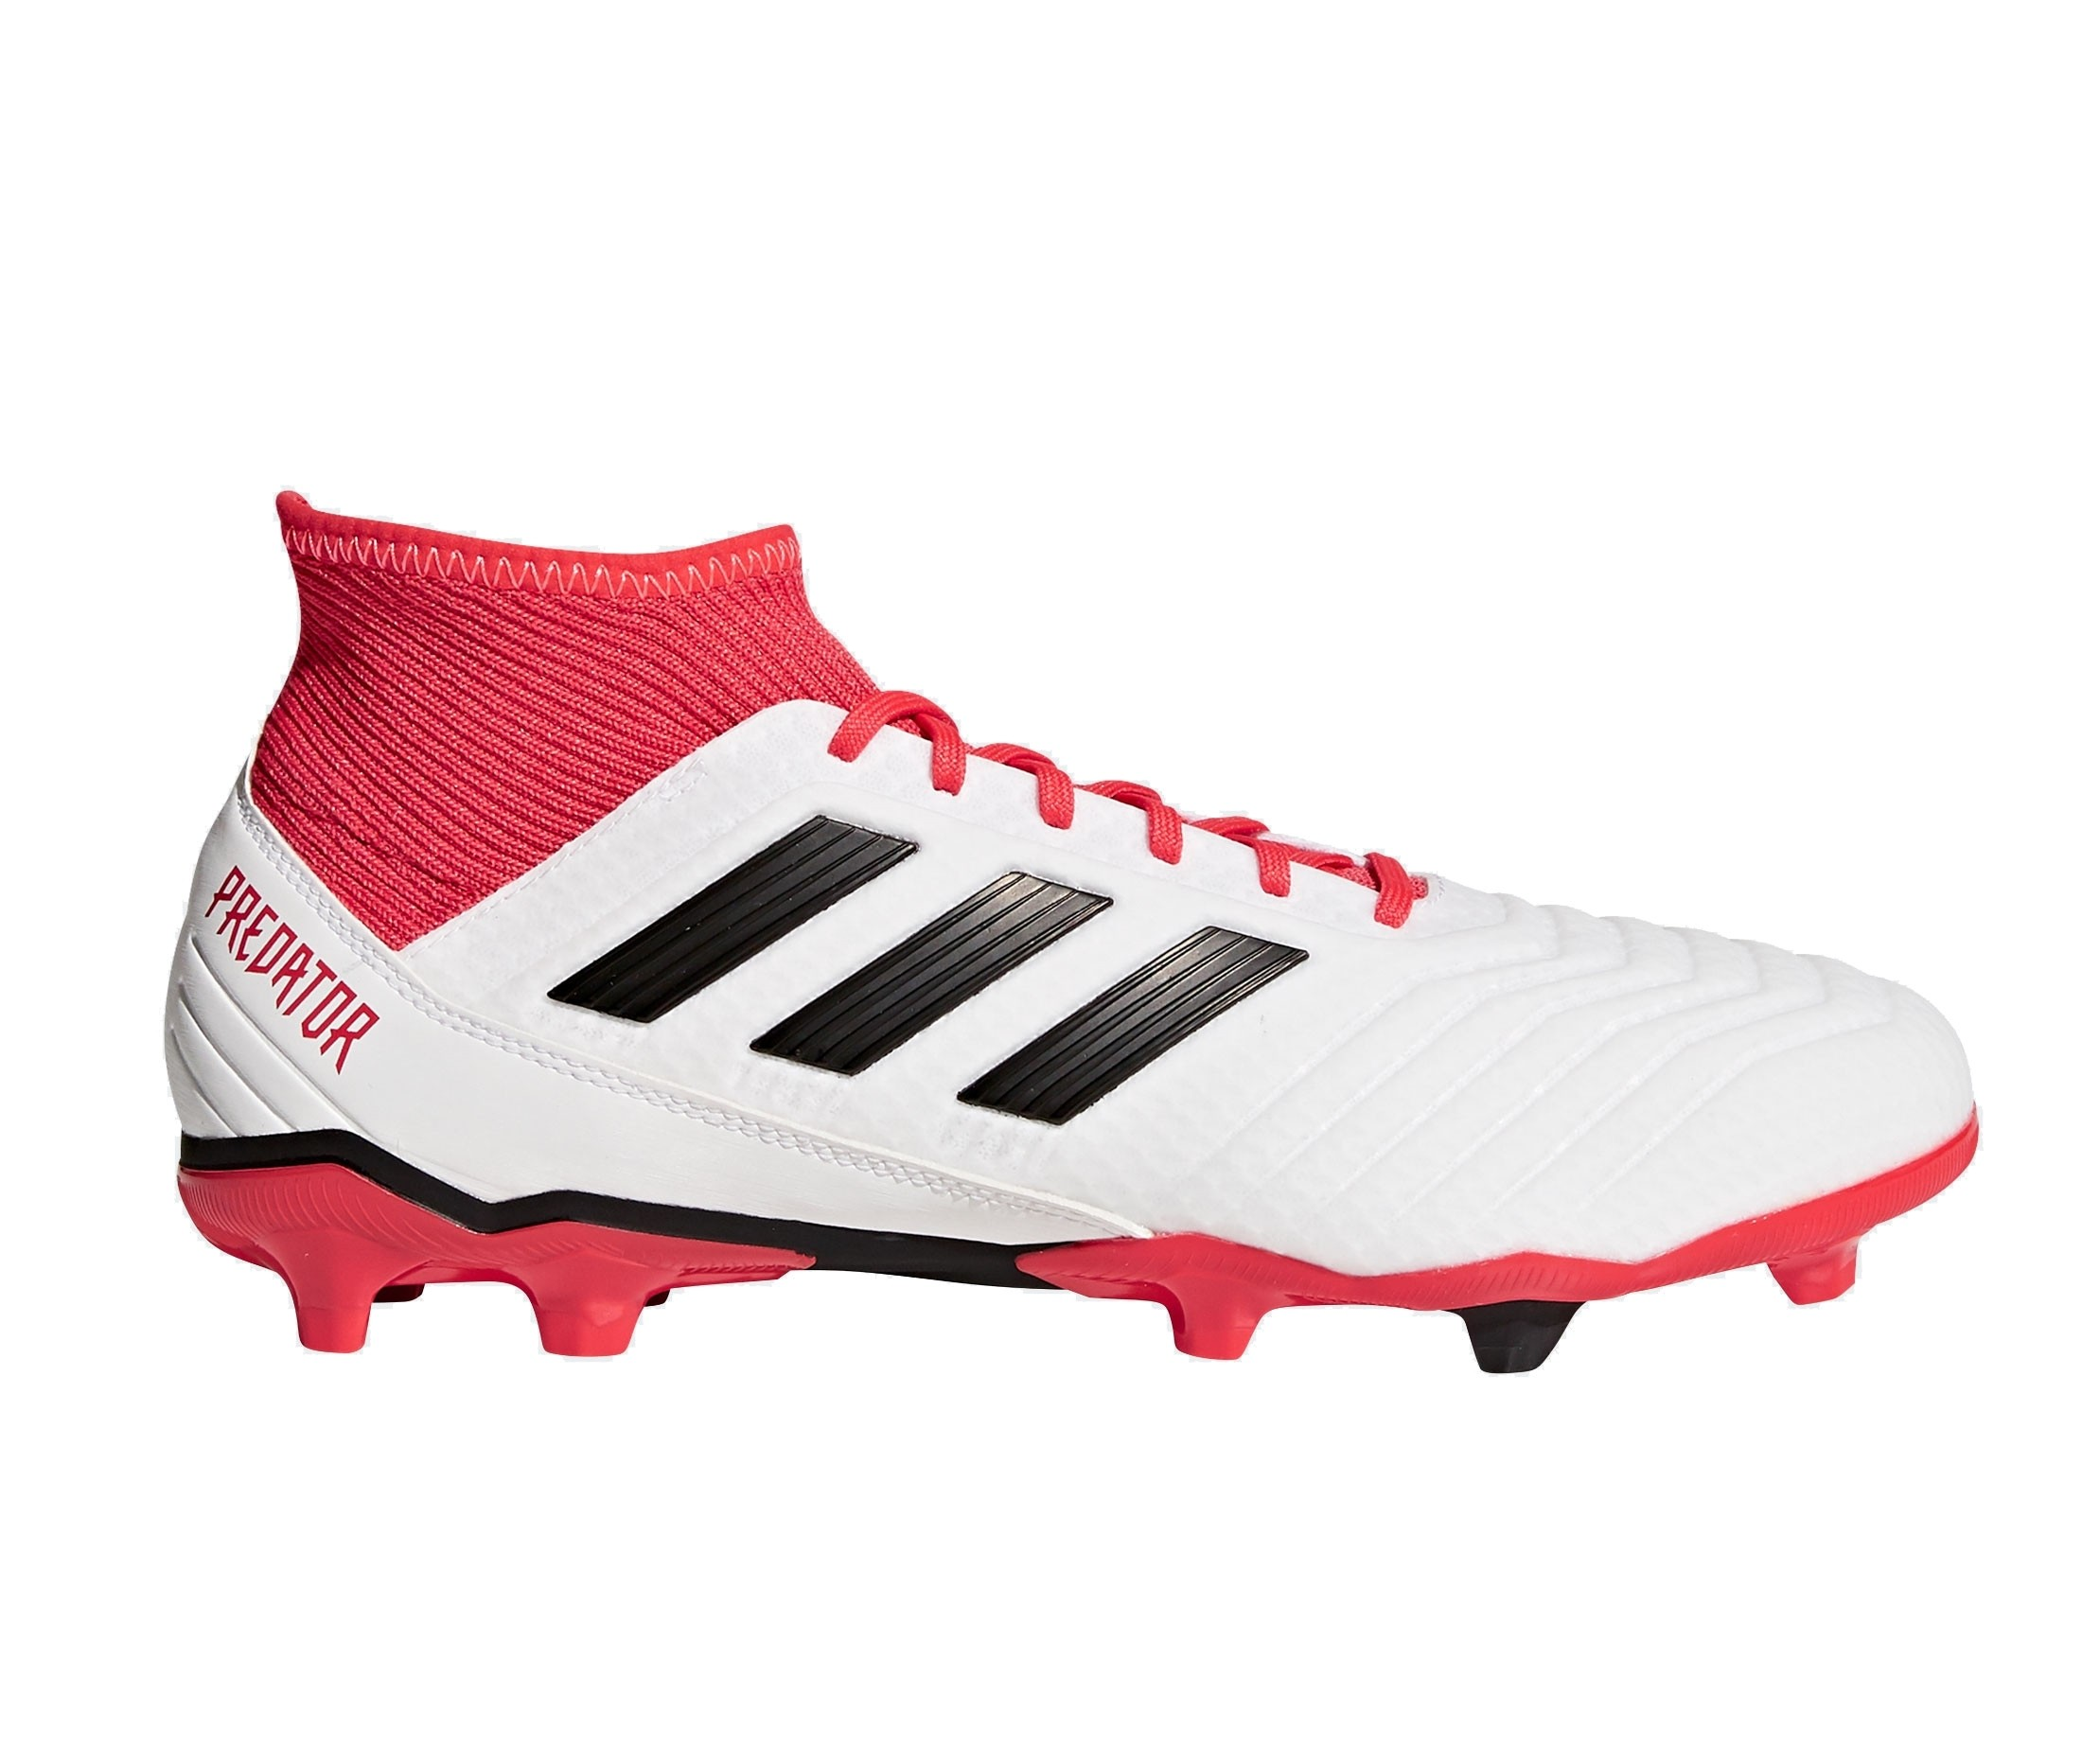 in stock picked up wholesale adidas predator rouge | Pas cher | www.photographe-robin.com